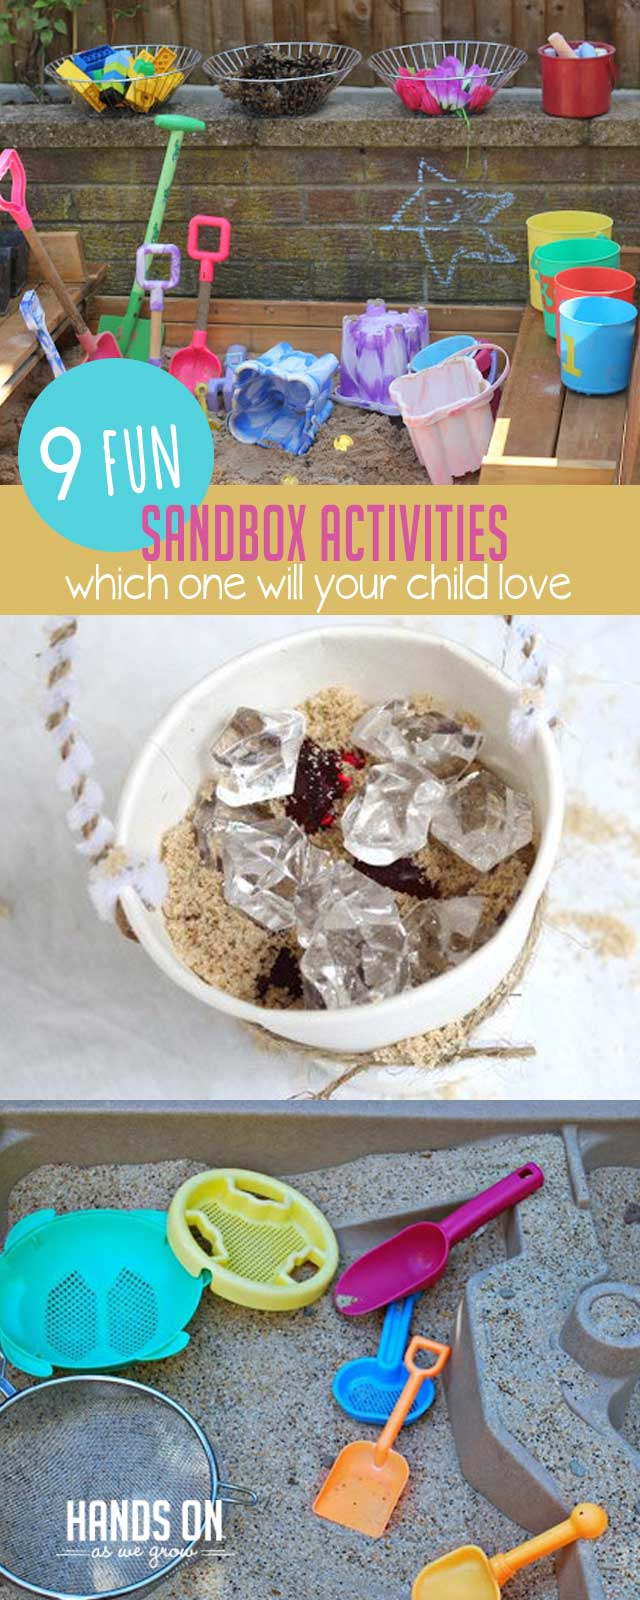 Add a twist to your normal sandbox activities with 10 creative ideas that are perfect for sensory bins, in the sandbox, or at the beach!